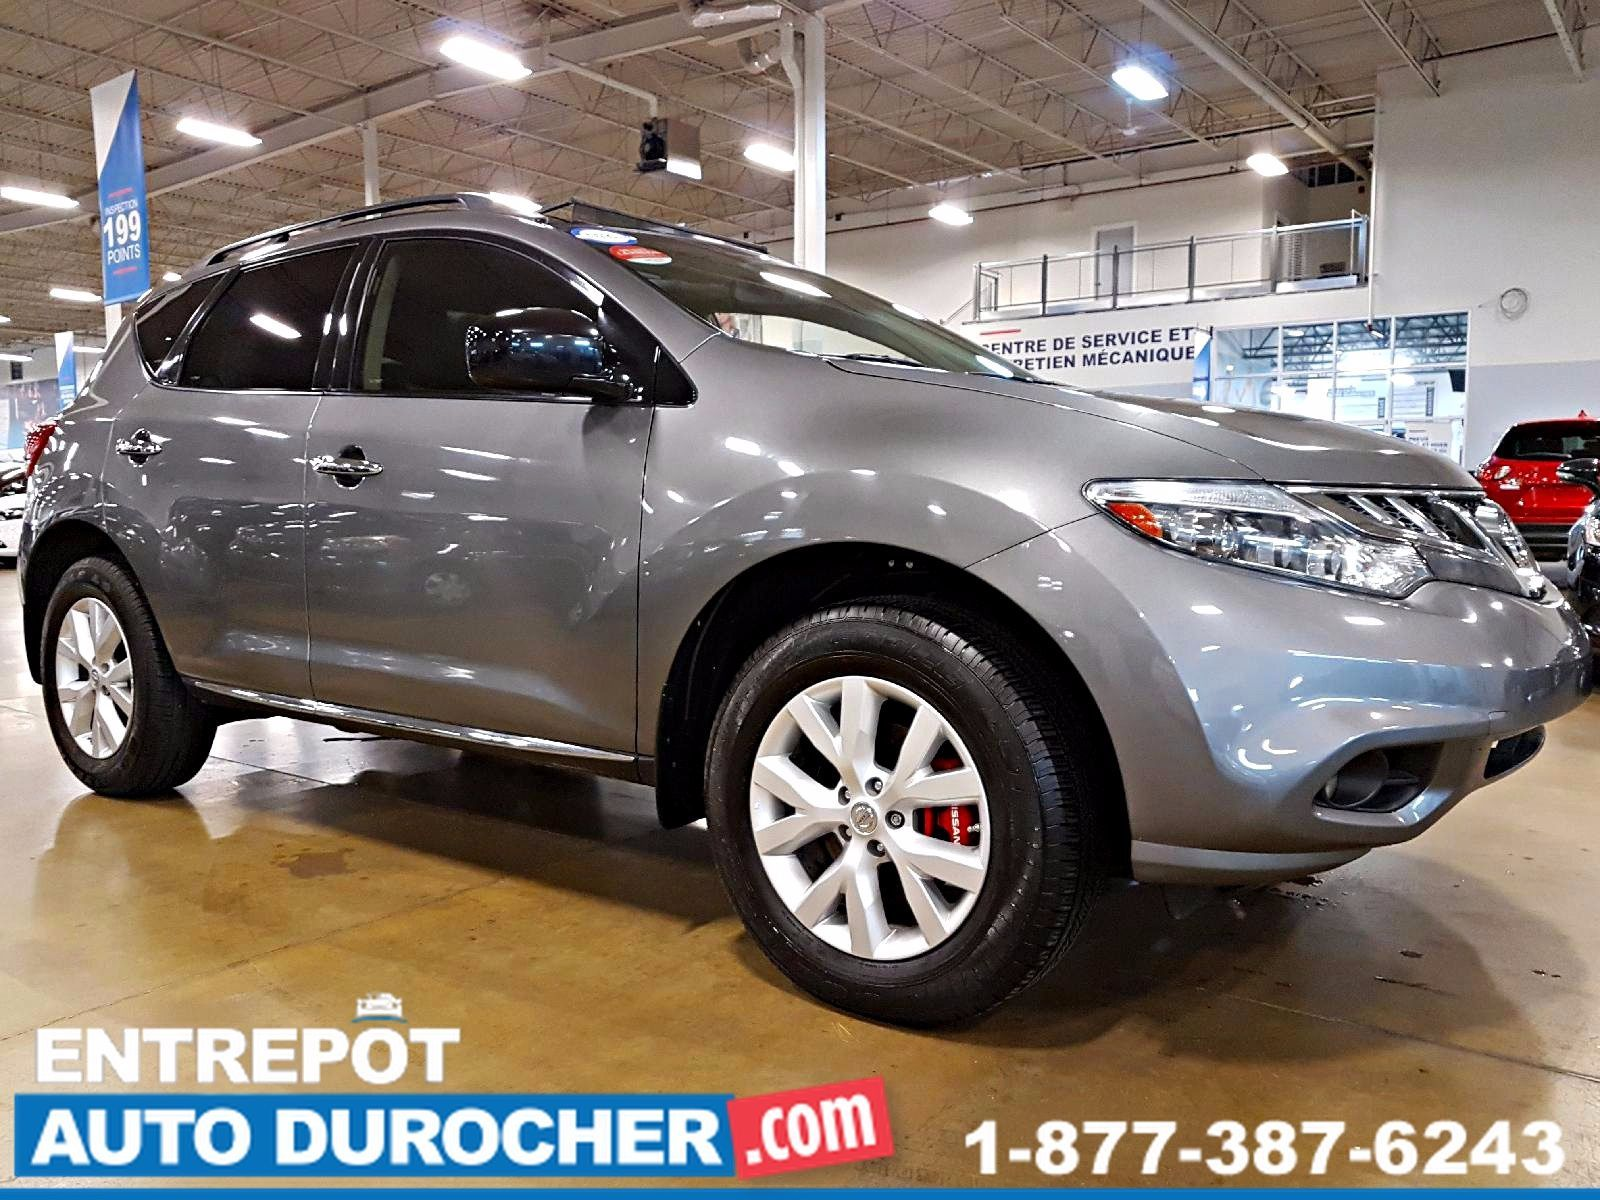 Nissan Murano SL AWD - AUTOMATIQUE - CUIR - TOIT OUVRANT 2013